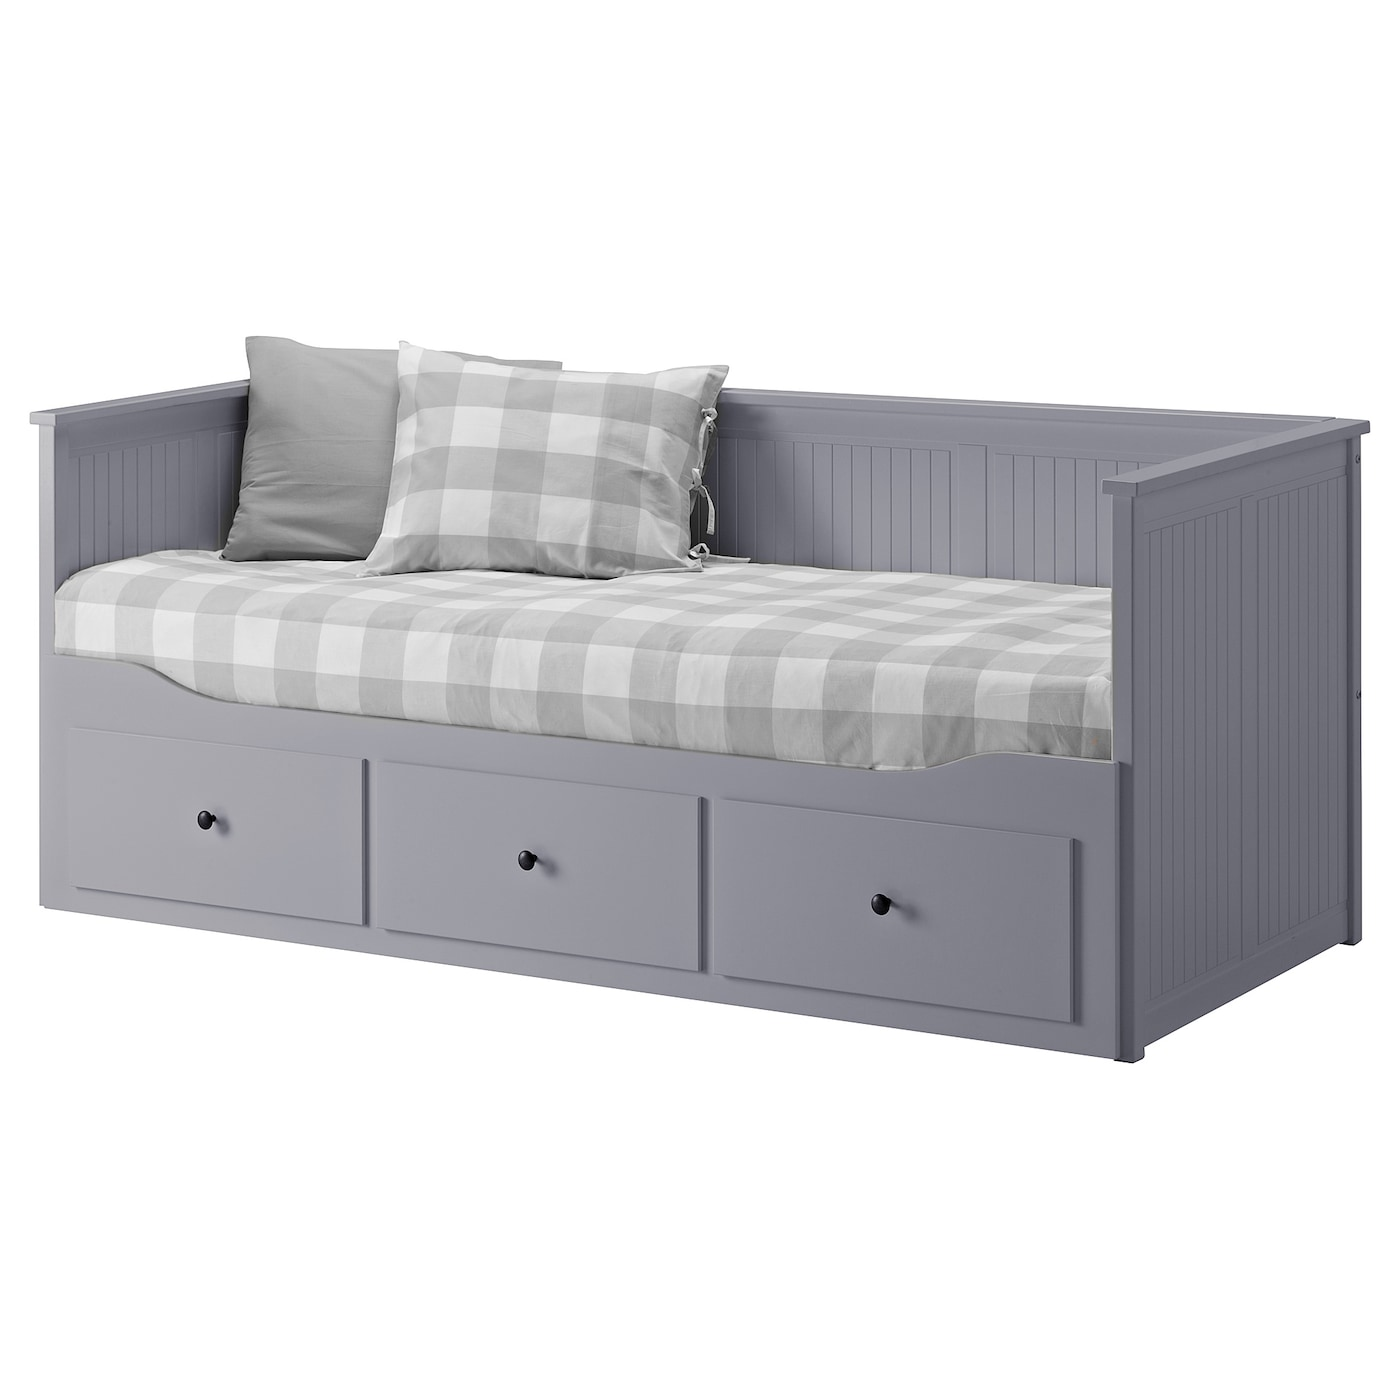 Hemnes day bed frame with 3 drawers grey 80x200 cm ikea How to buy a bed